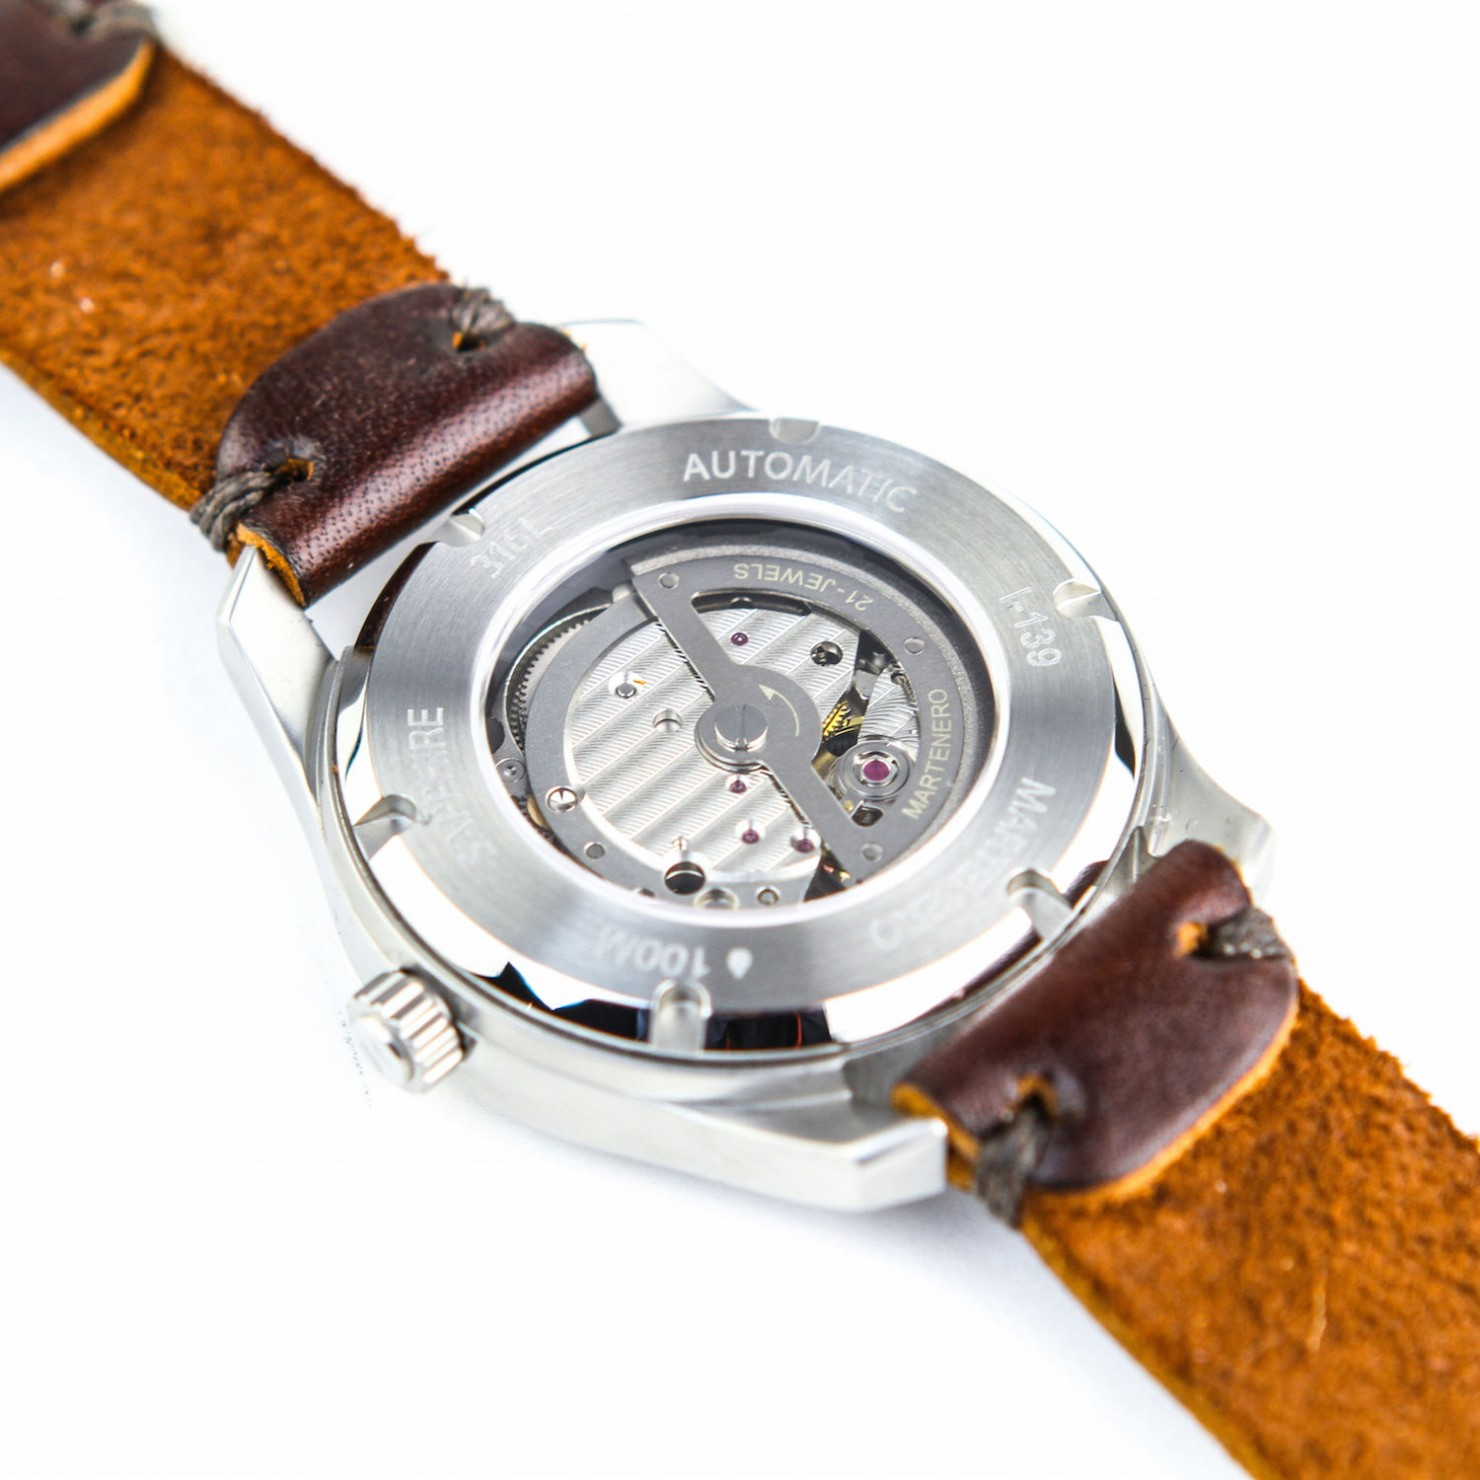 Martenero-Watch-Movement